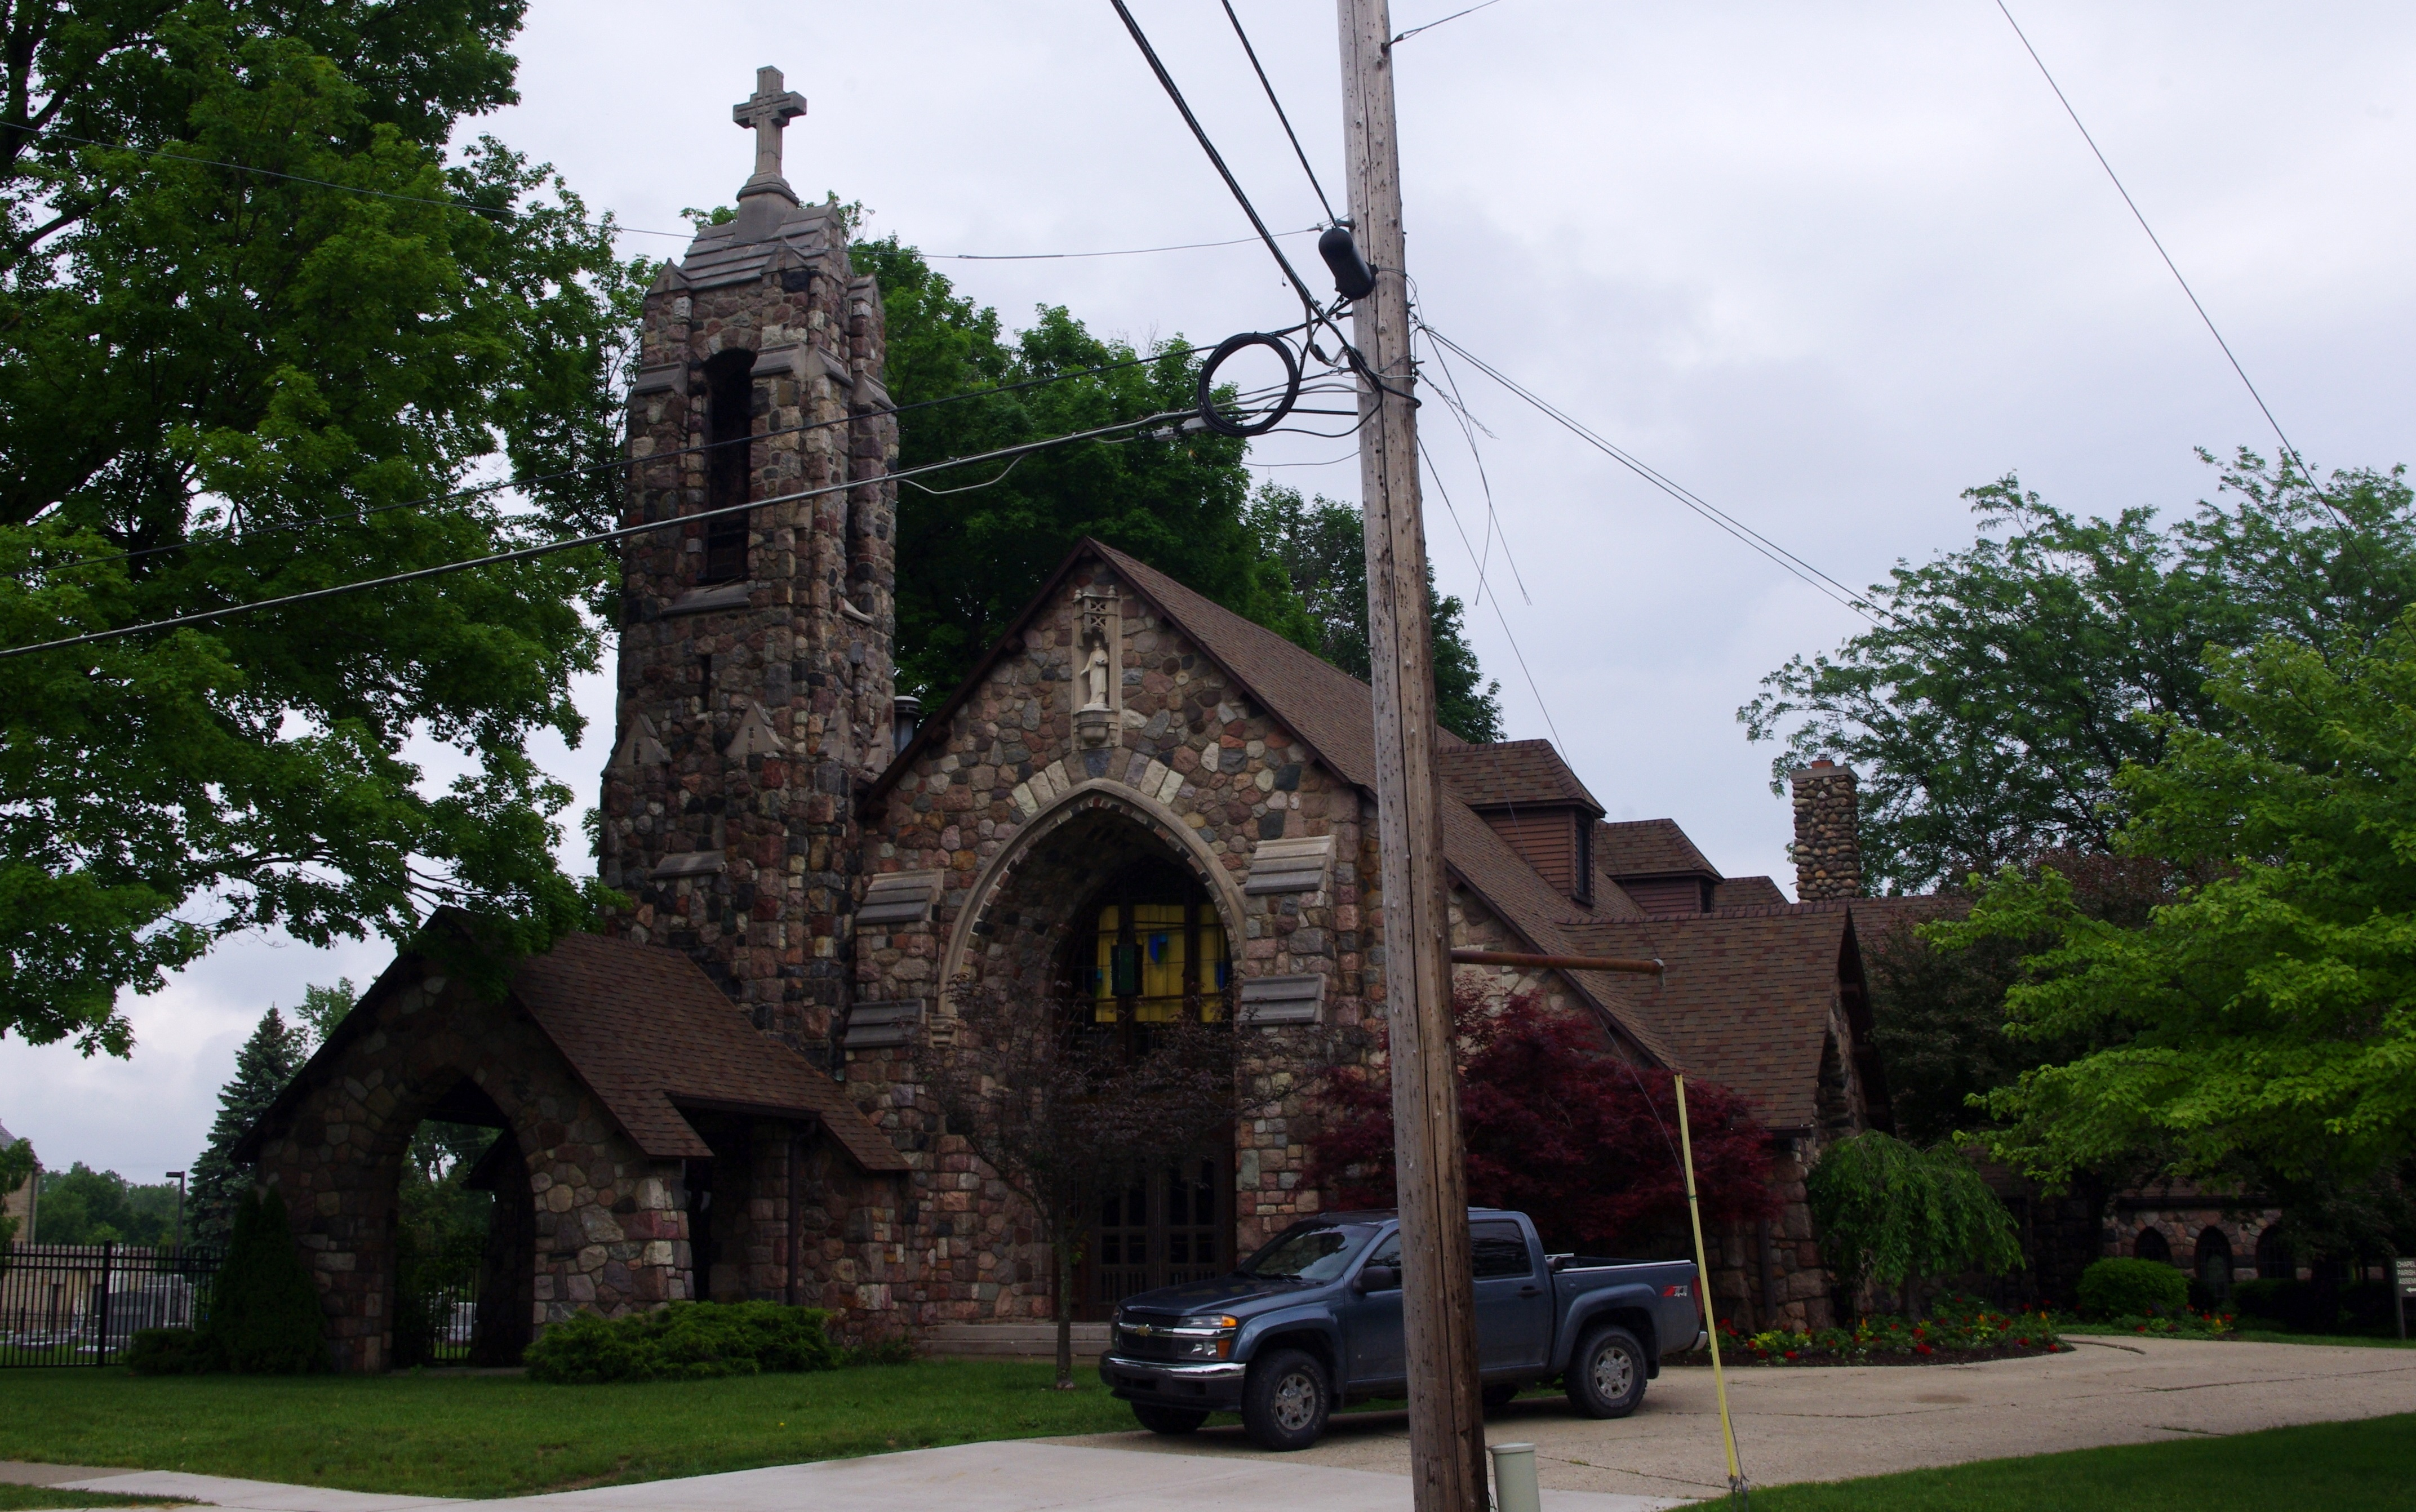 Saint John the Evangelist Church (Fenton, MI) - stone church